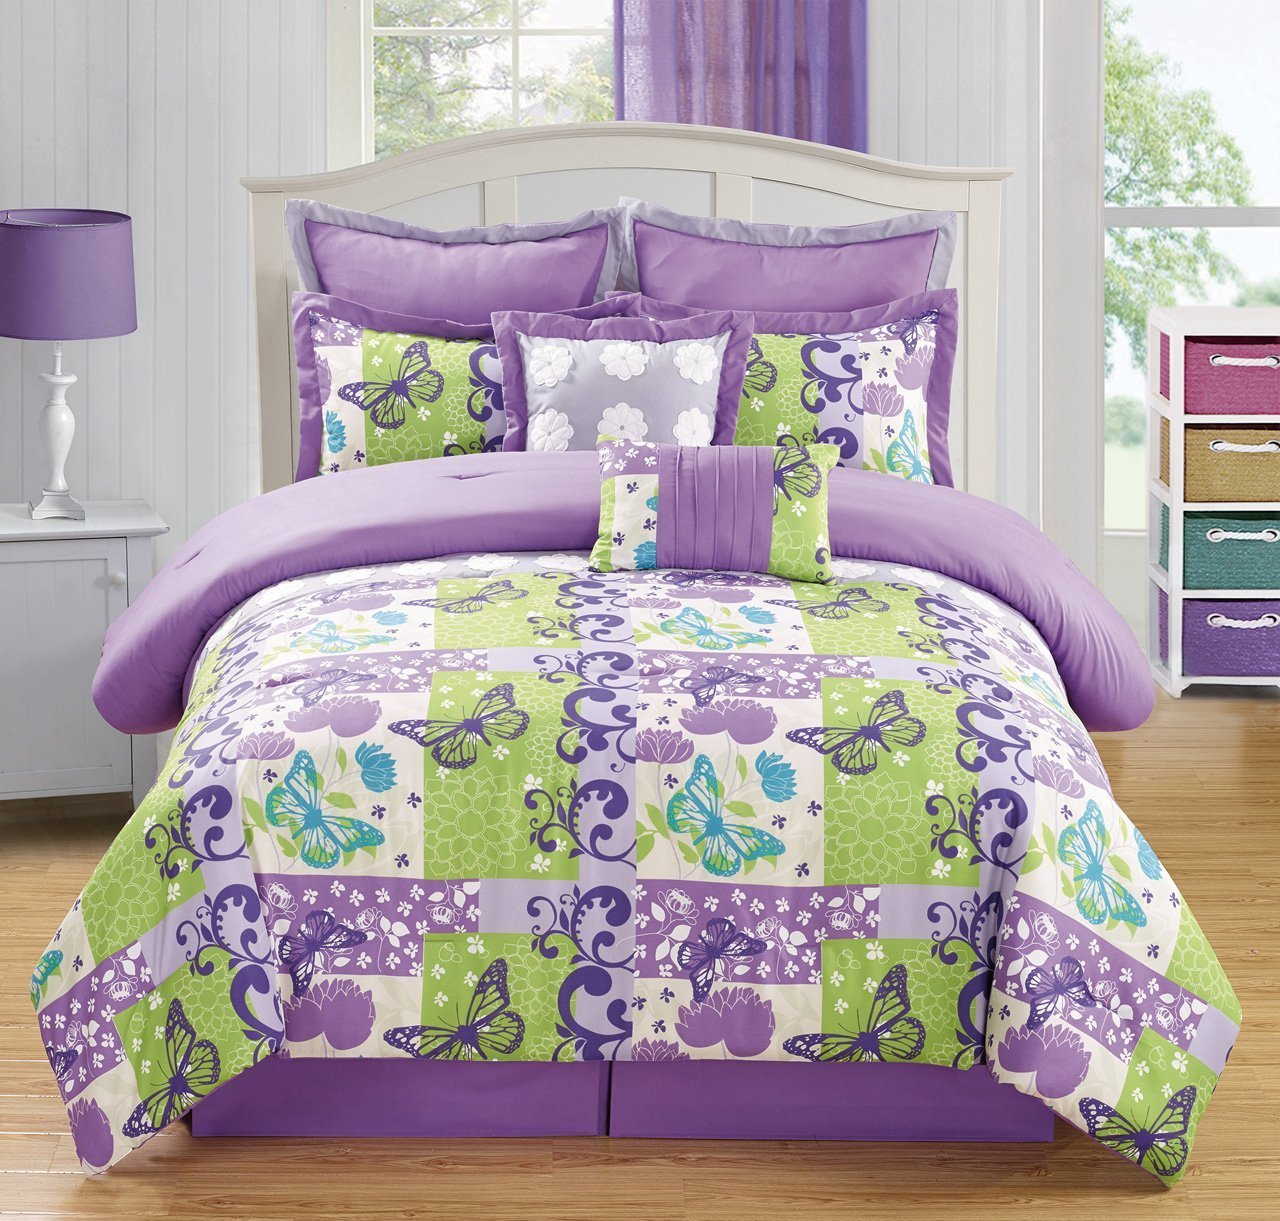 Girlsu0027 Butterfly Theme Purple And Lime Green Comforter Set